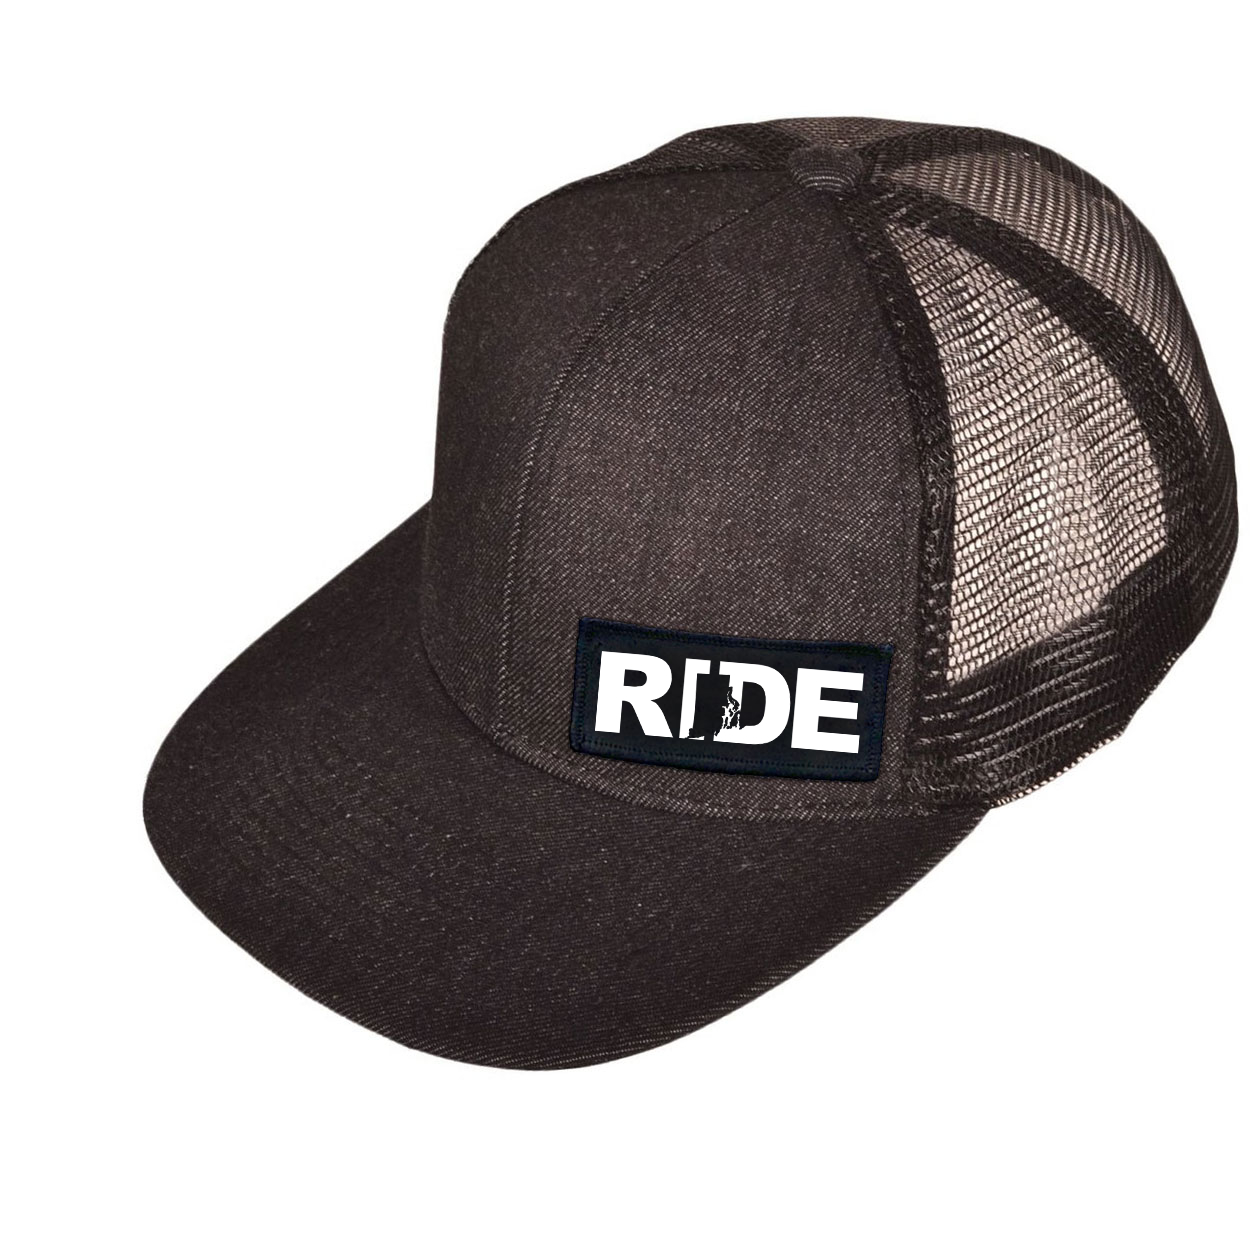 Ride Rhode Island Night Out Woven Patch Snapback Flat Brim Hat Black Denim (White Logo)